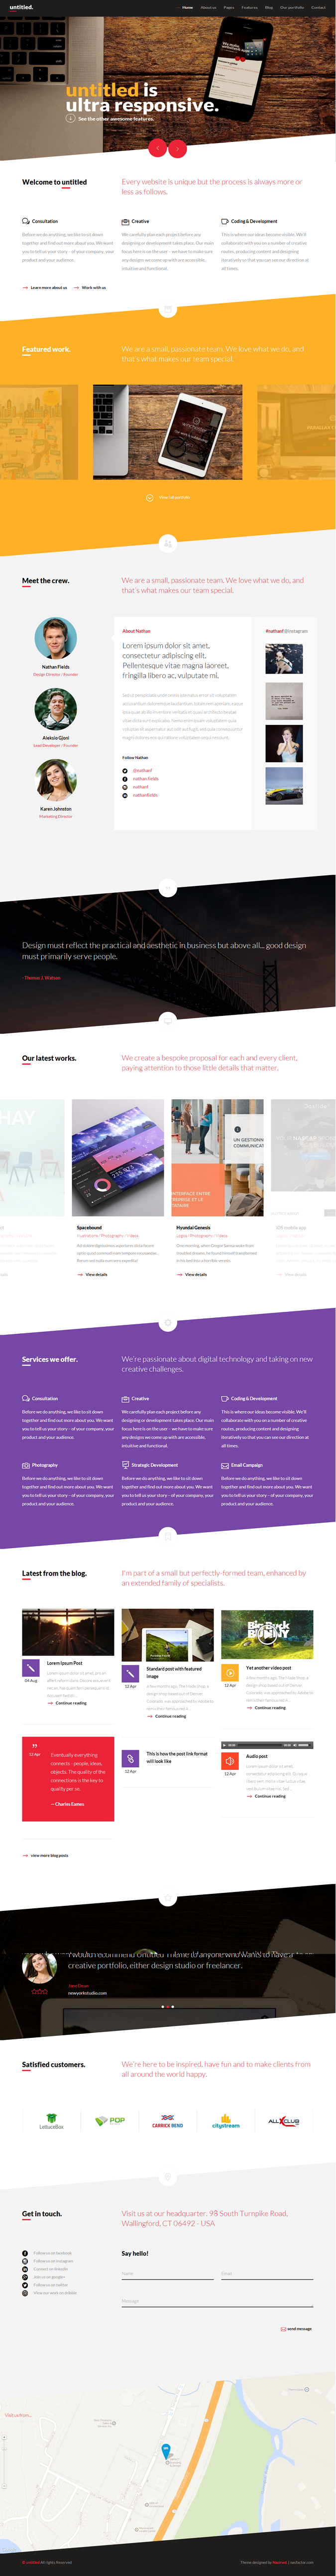 Untitled is an most powerful multipurpose WordPress theme. It has powerful front end PageBuilder ...